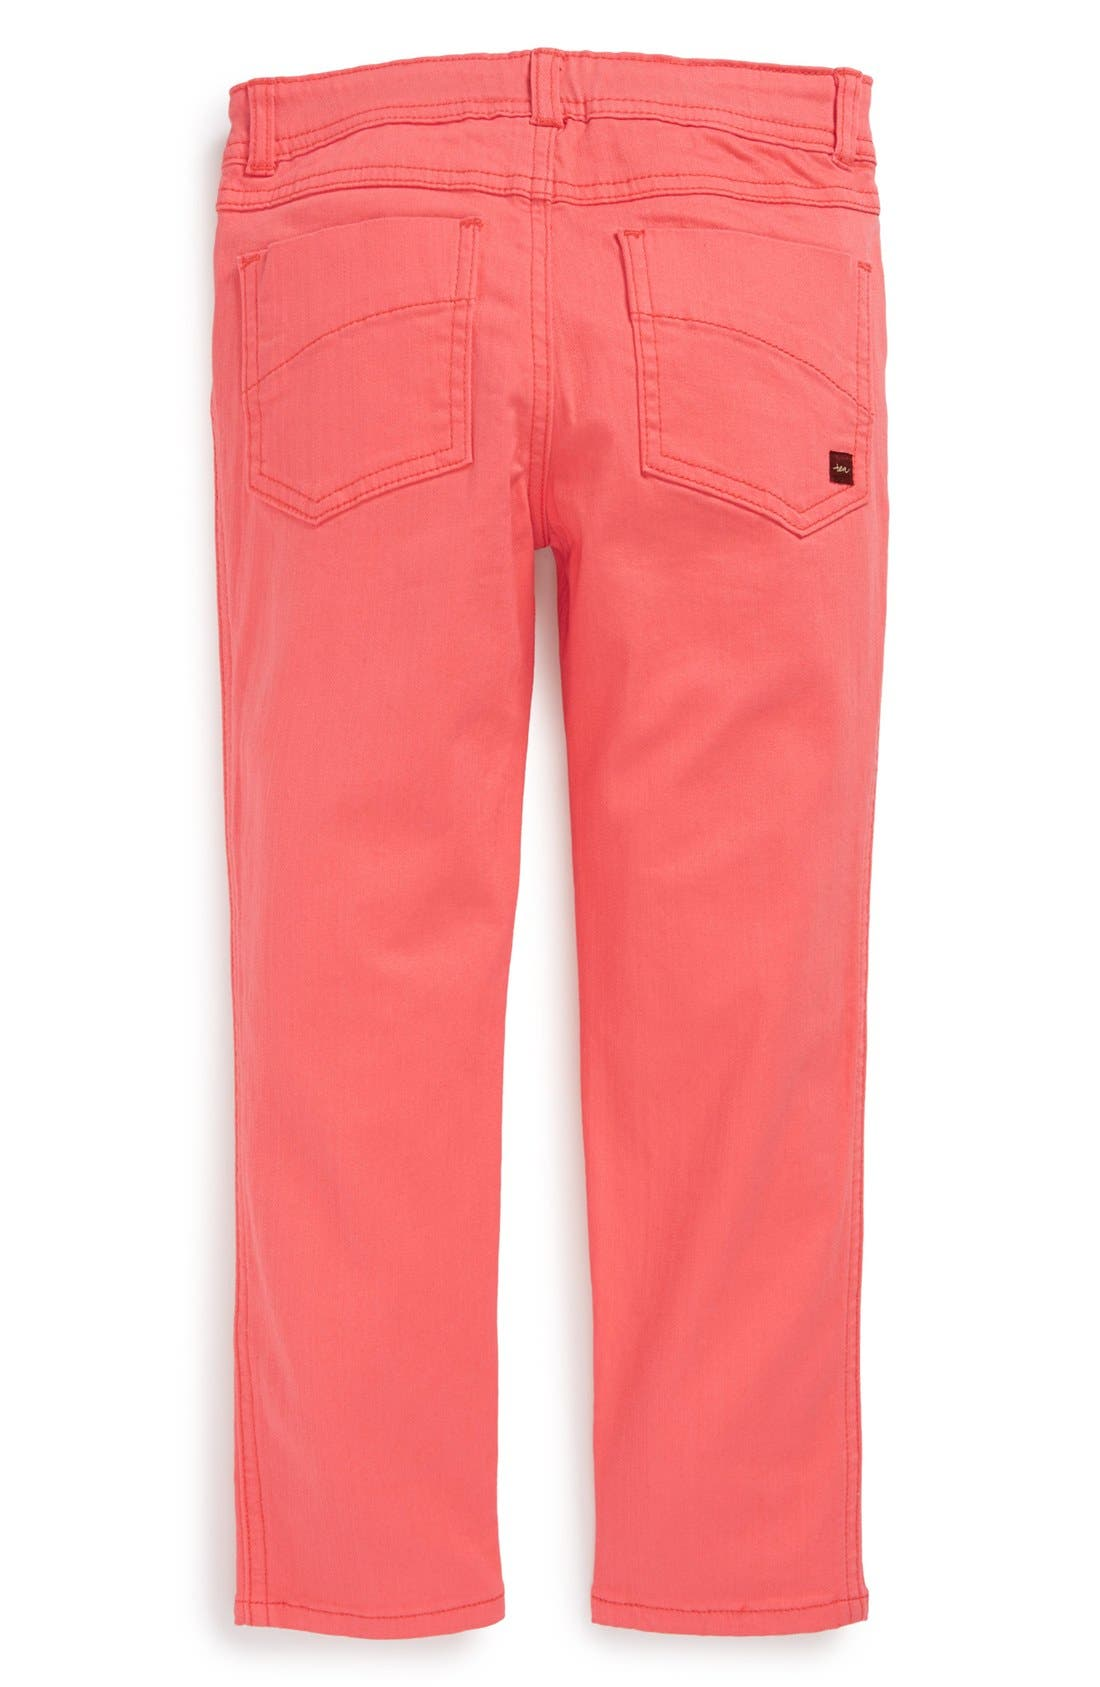 Alternate Image 1 Selected - Tea Collection Skinny Ankle Pants (Little Girls & Big Girls)